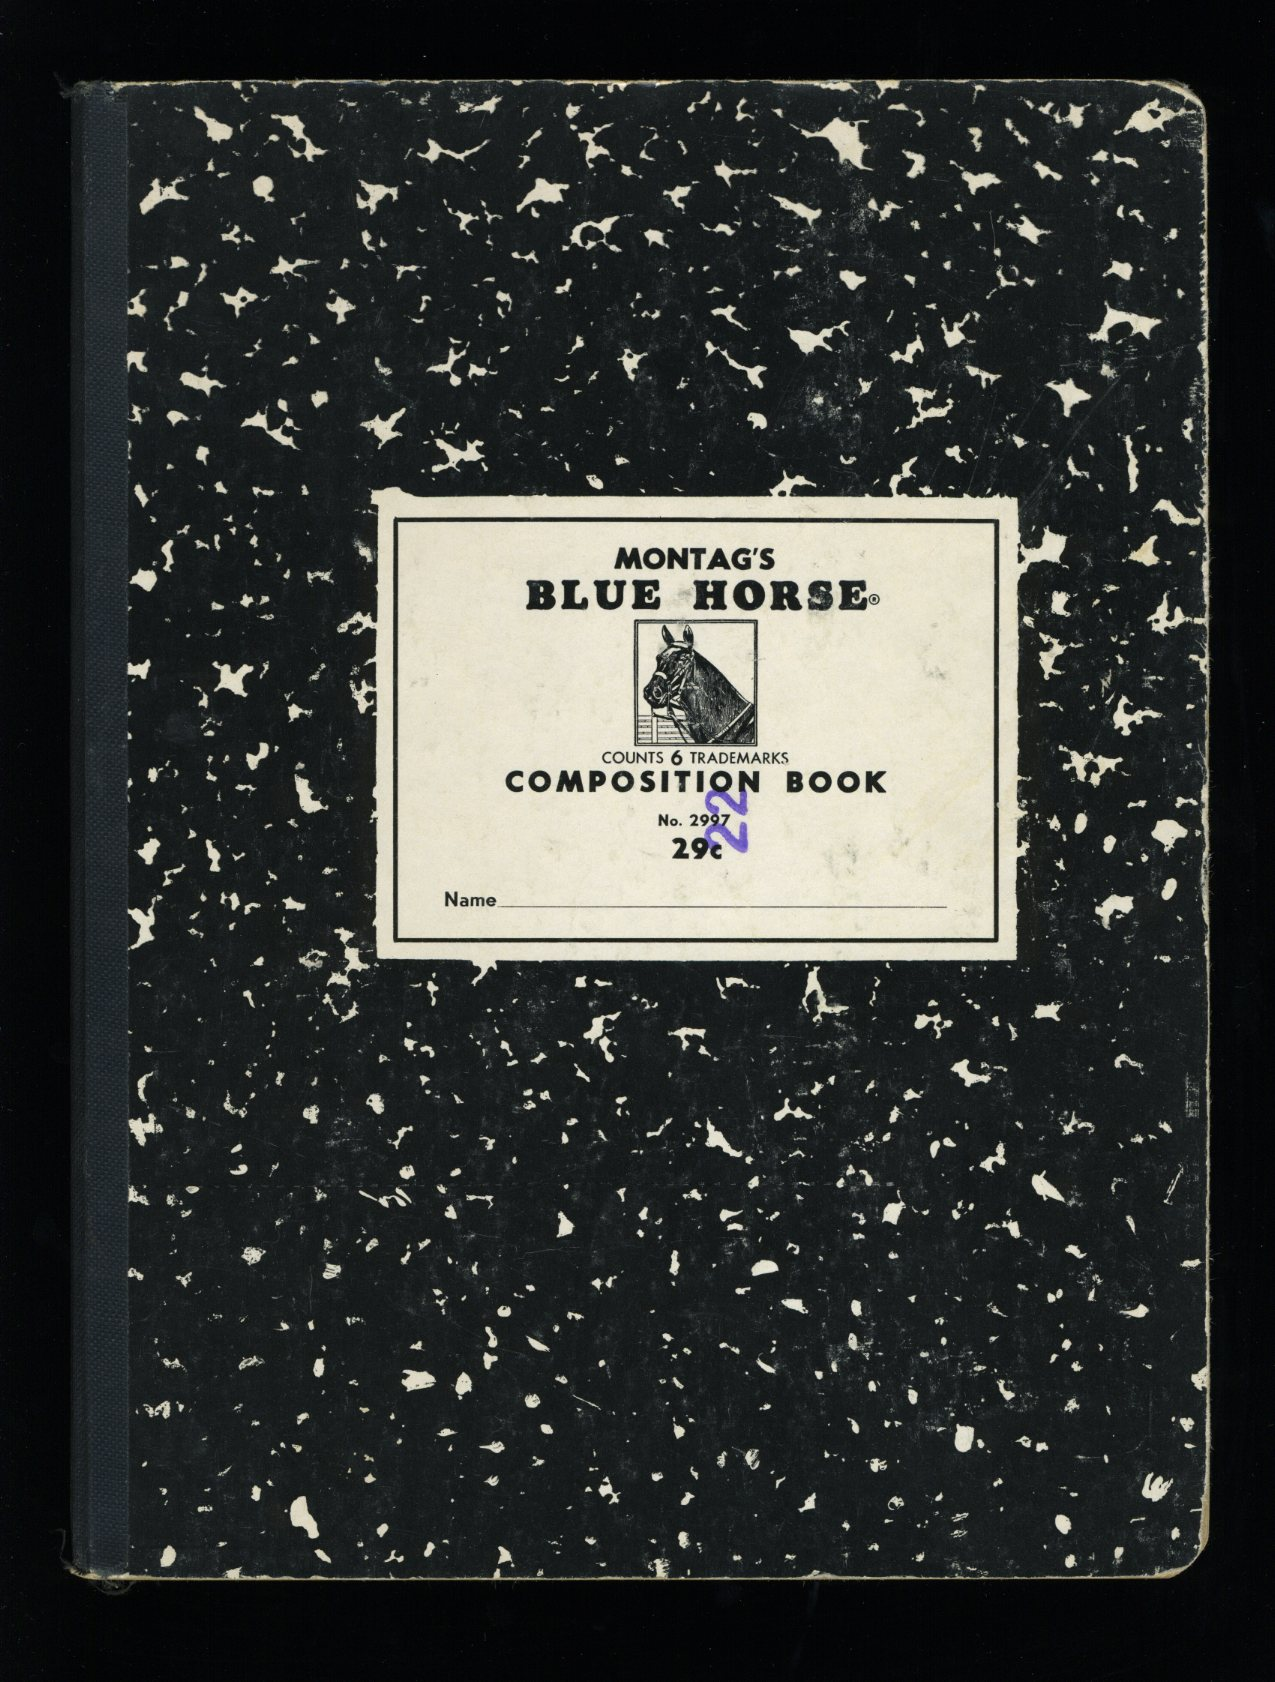 Montag's Blue Horse Composition Book